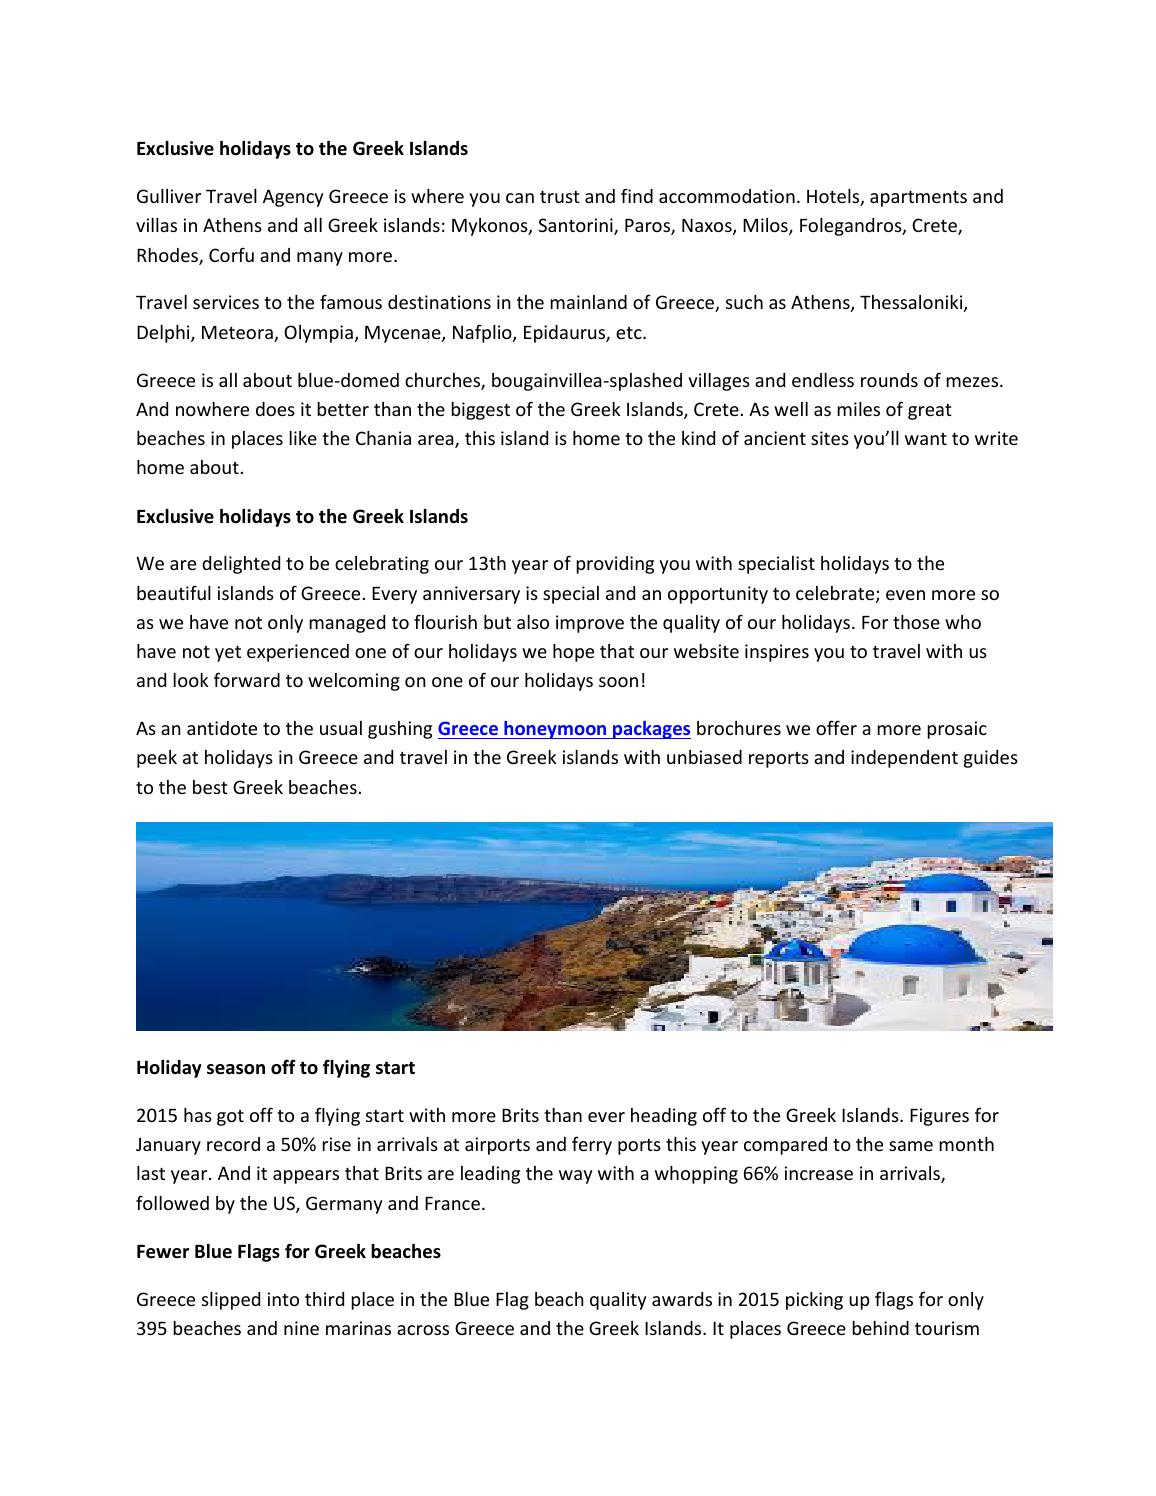 Exclusive holidays to the greek islands by island tours - issuu